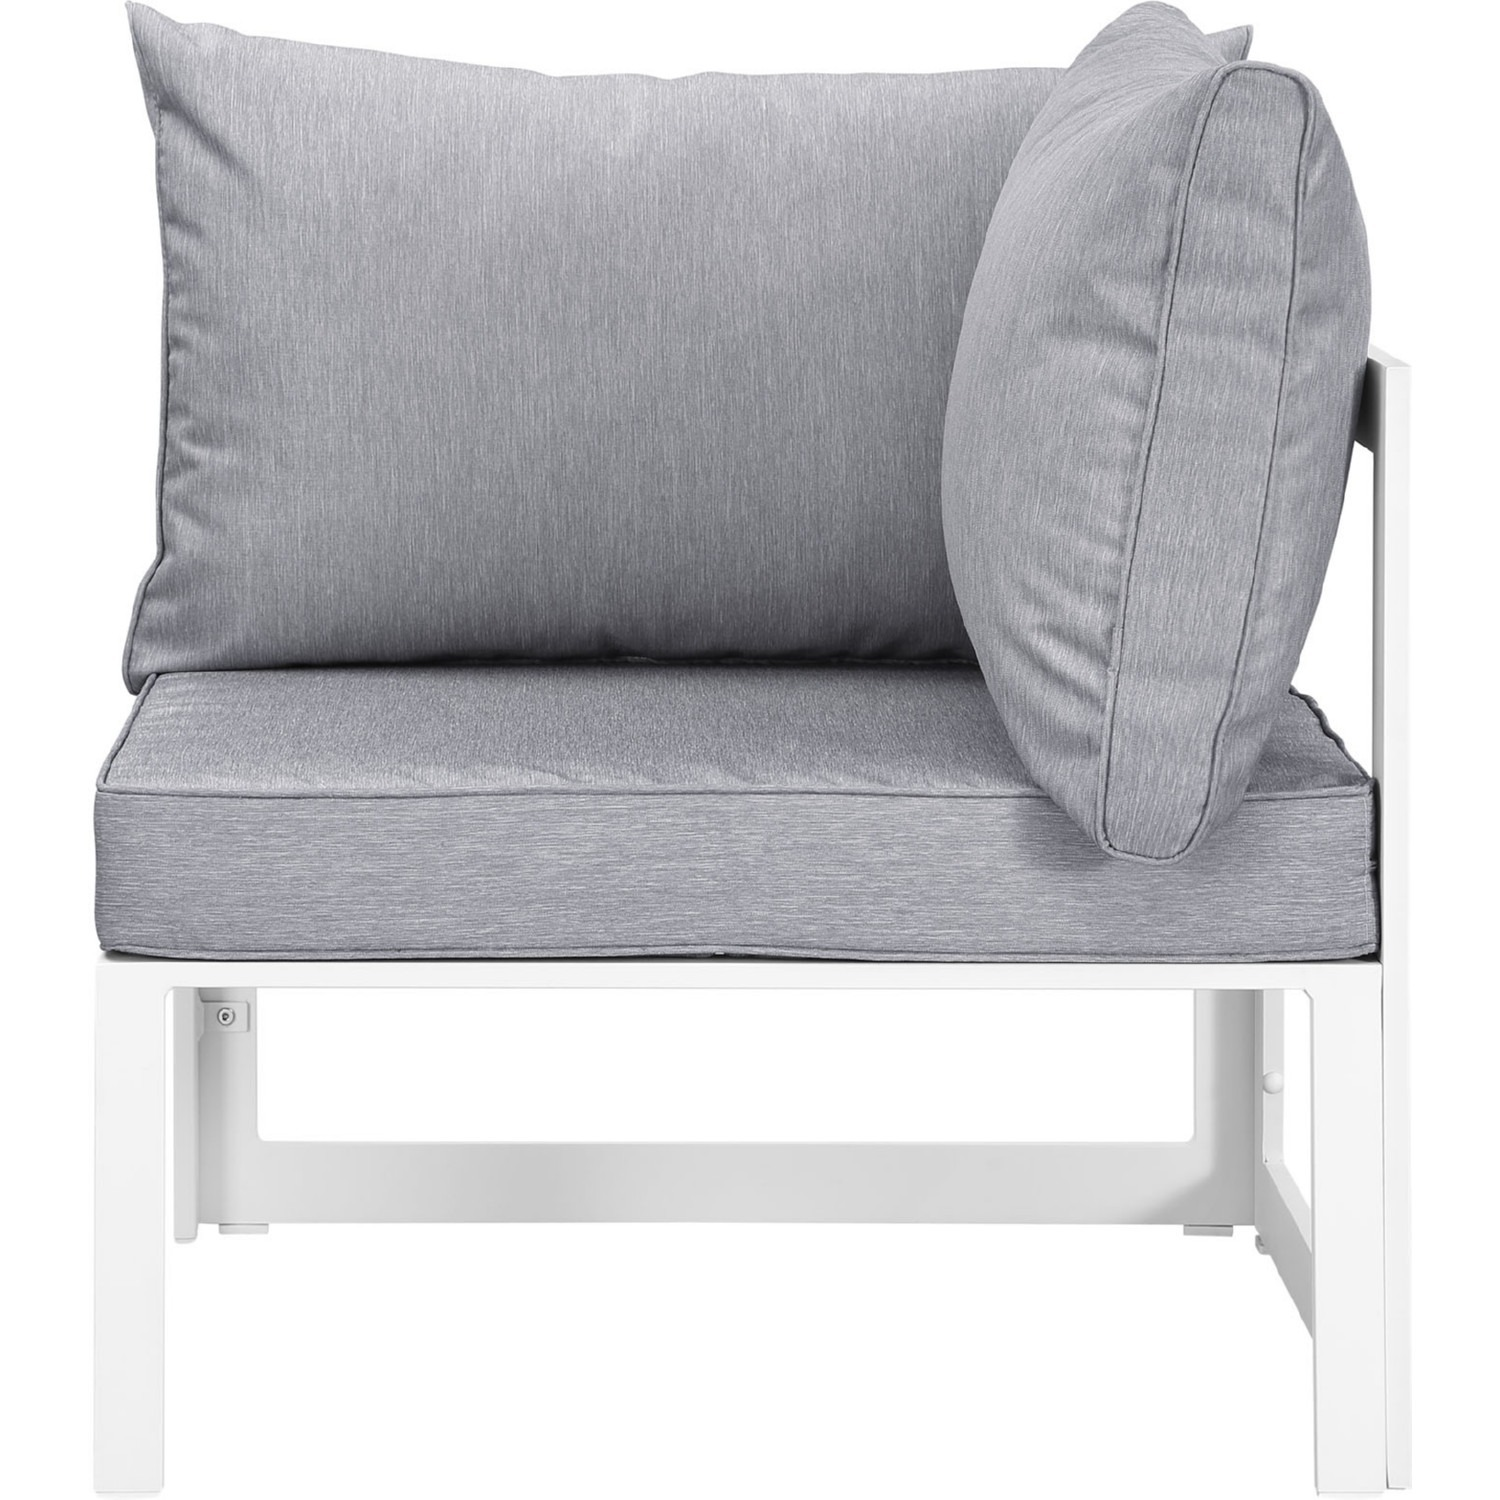 8-Piece Outdoor Sectional In Gray Fabric Finish - image-4